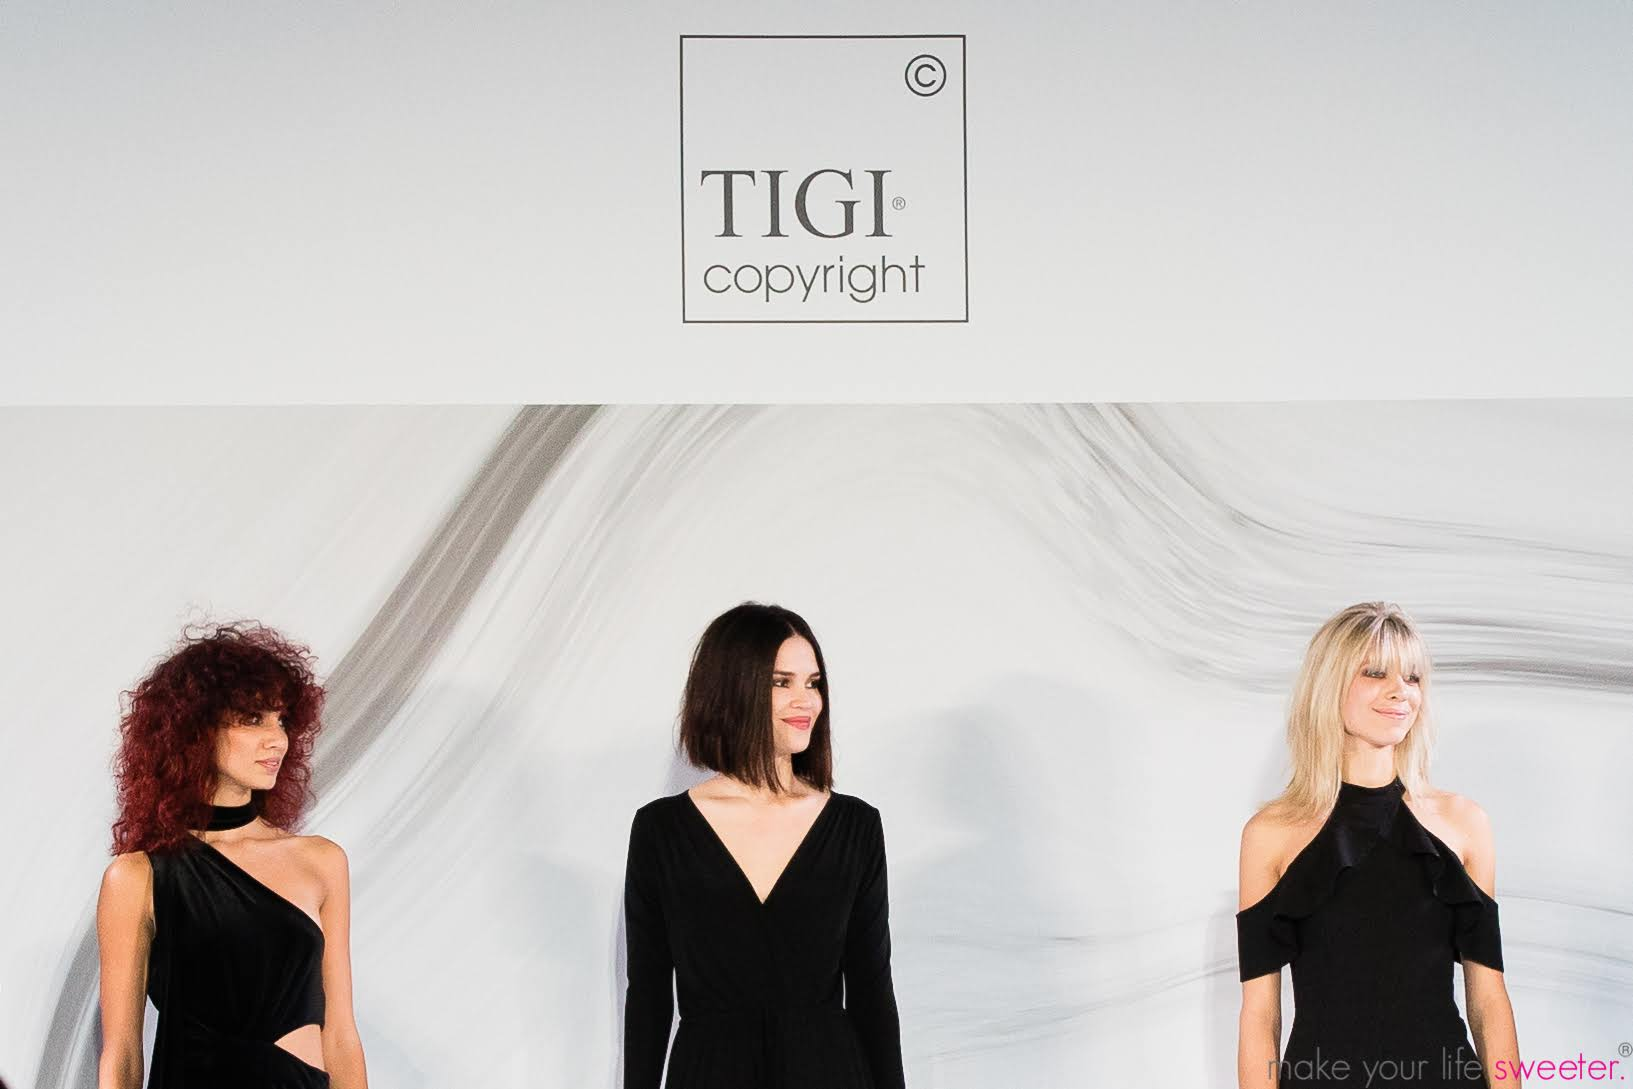 Make Your Life Sweeter Events - TIGI Copyright Miami